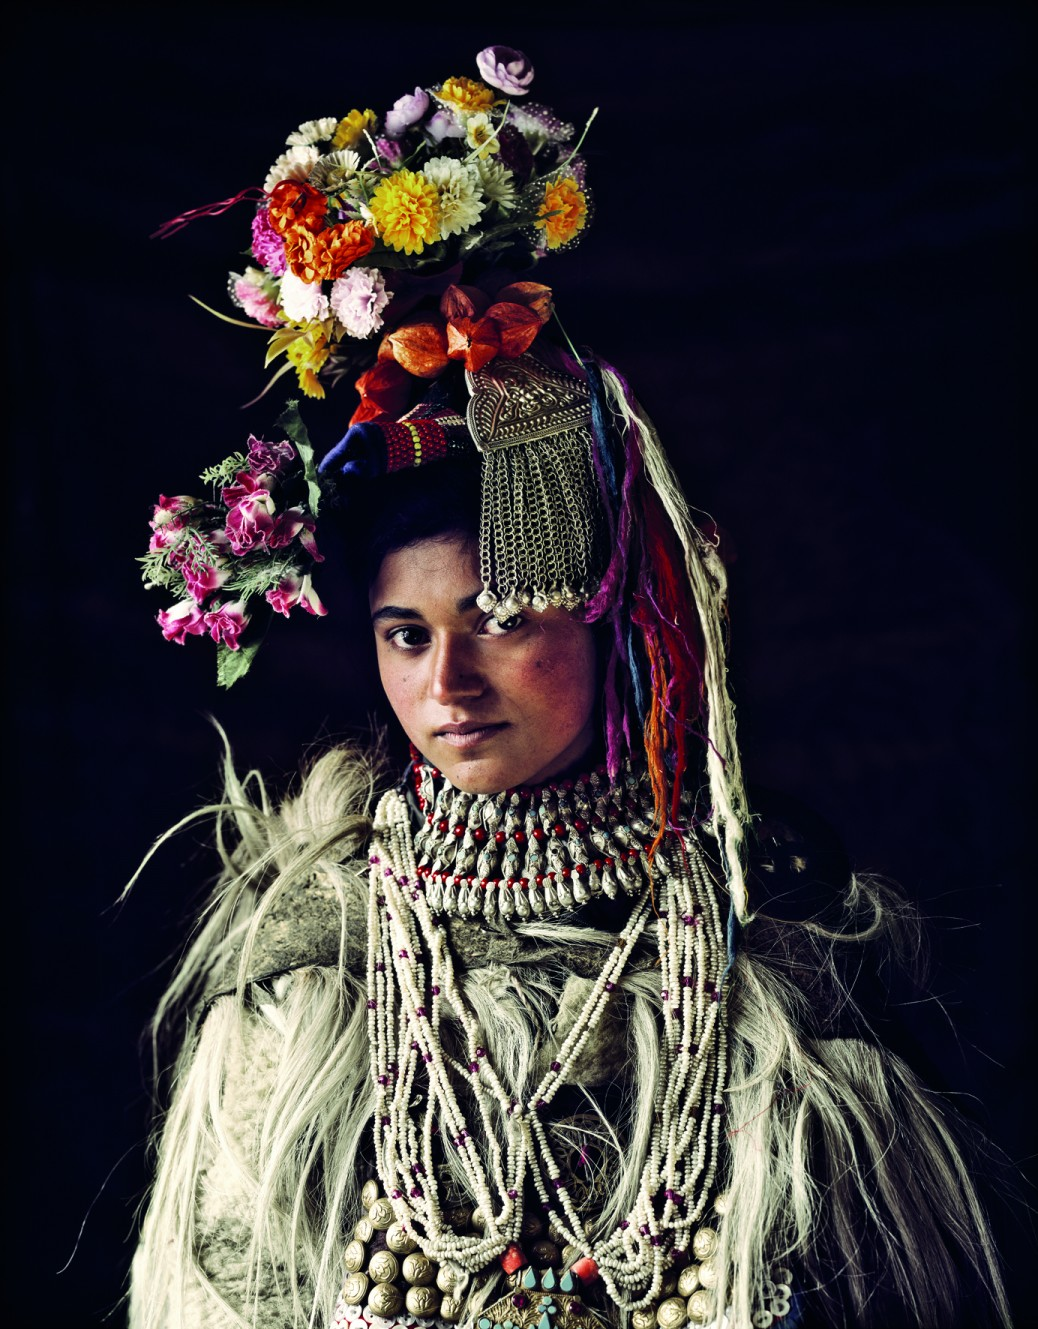 Stunning Photographs Of The World's Last Indigenous Tribes - DHAGI IN DHA VILLAGE, KASHMIR